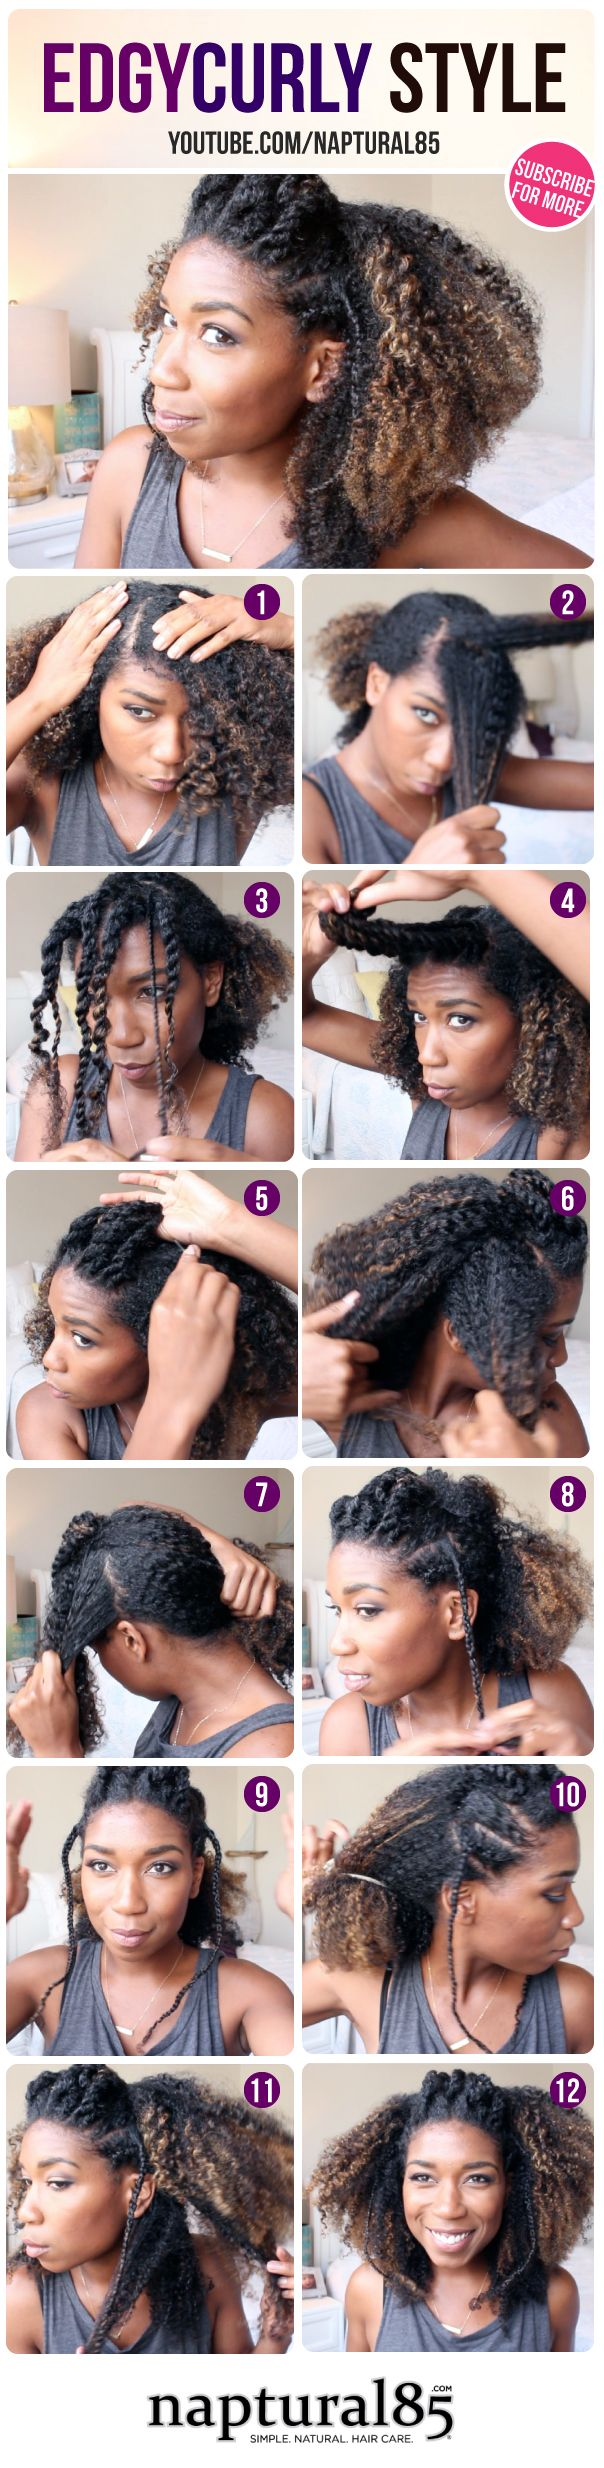 An Edgy Curly Wash and Go Hairstyle perfect for any occasion! This hairstyle looks great on...